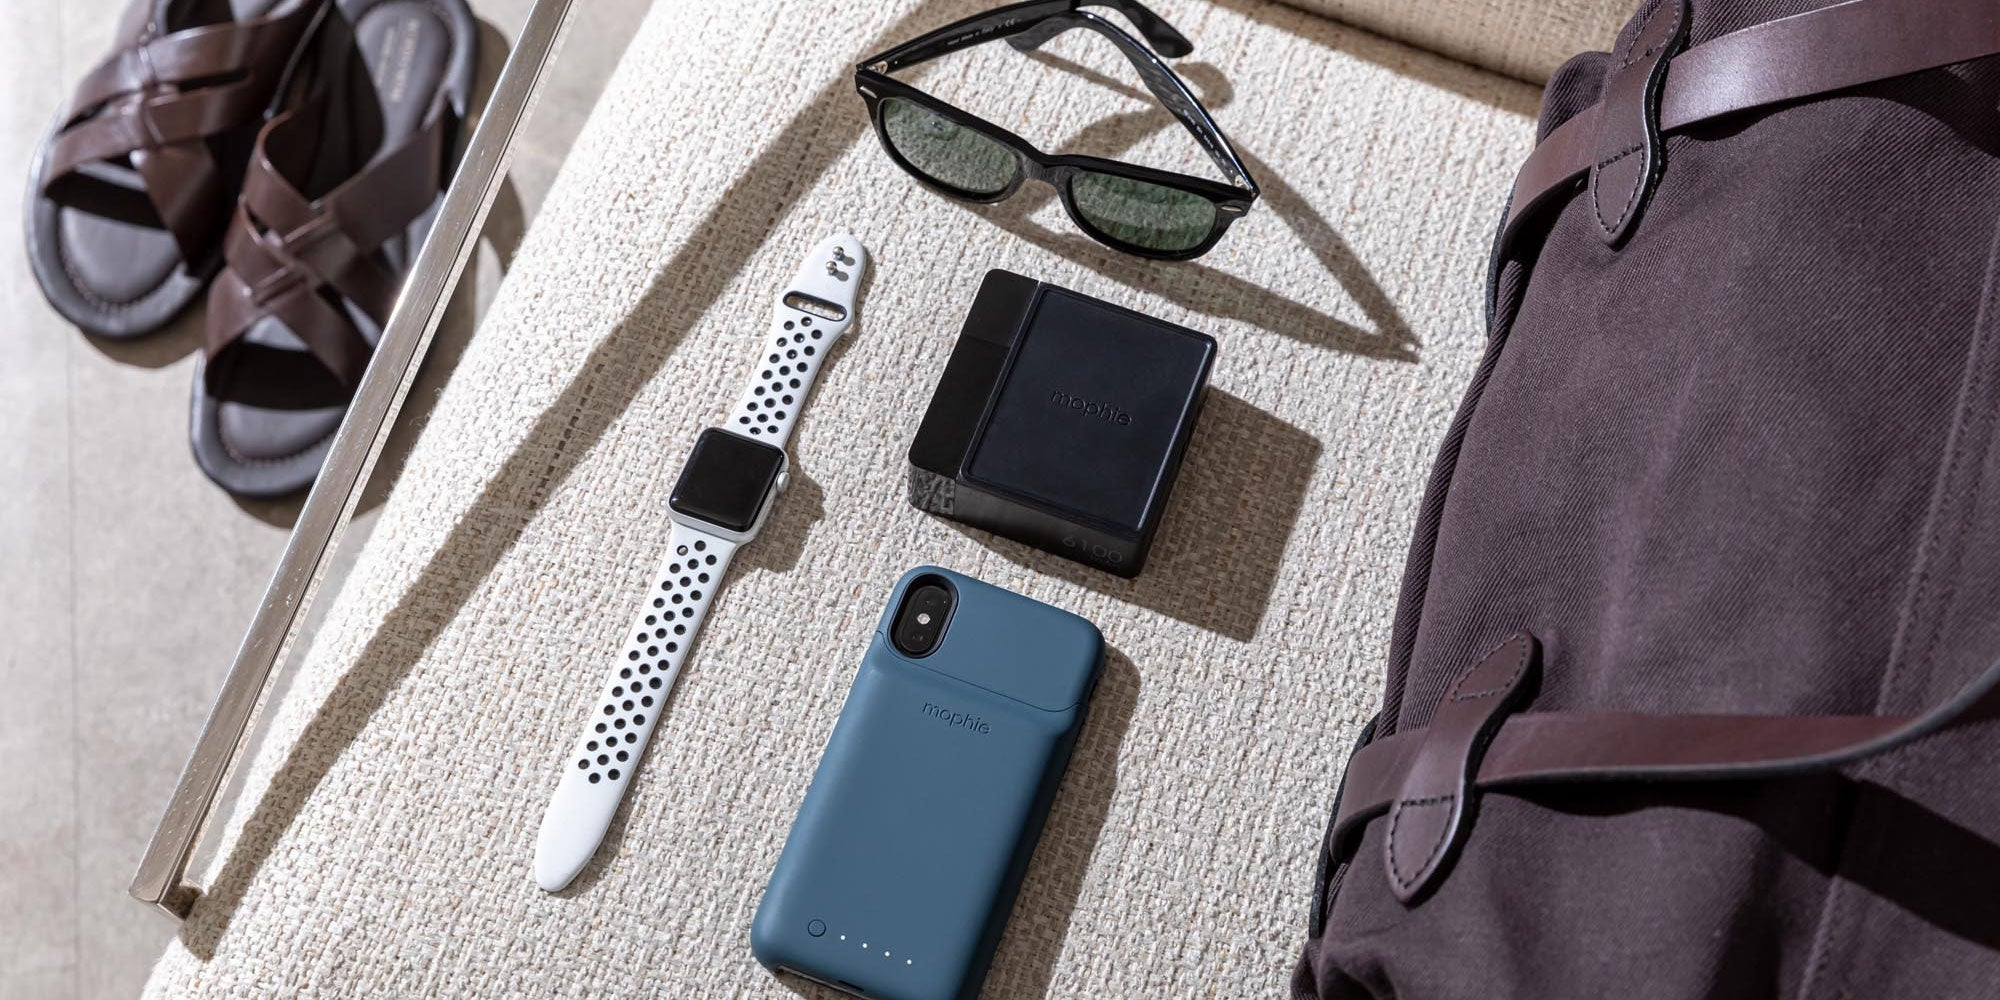 mophie powerstation hub on a chair next to an apple watch, a phone, sunglasses, a duffle bag, and sandals